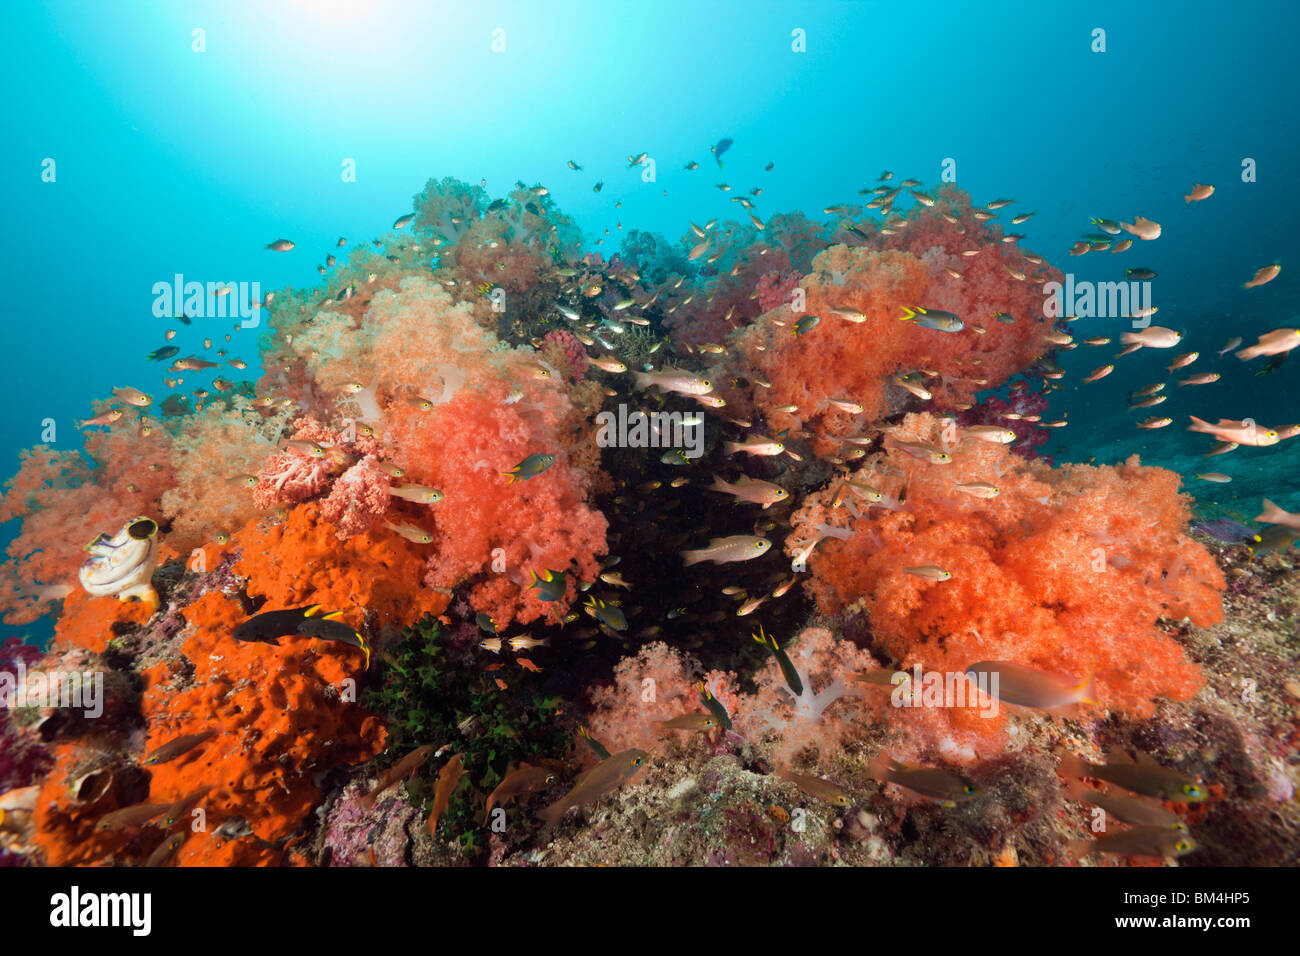 Red Soft Corals at Coral Reef, Dendronephthya sp., Raja Ampat, West Papua, Indonesia - Stock Image